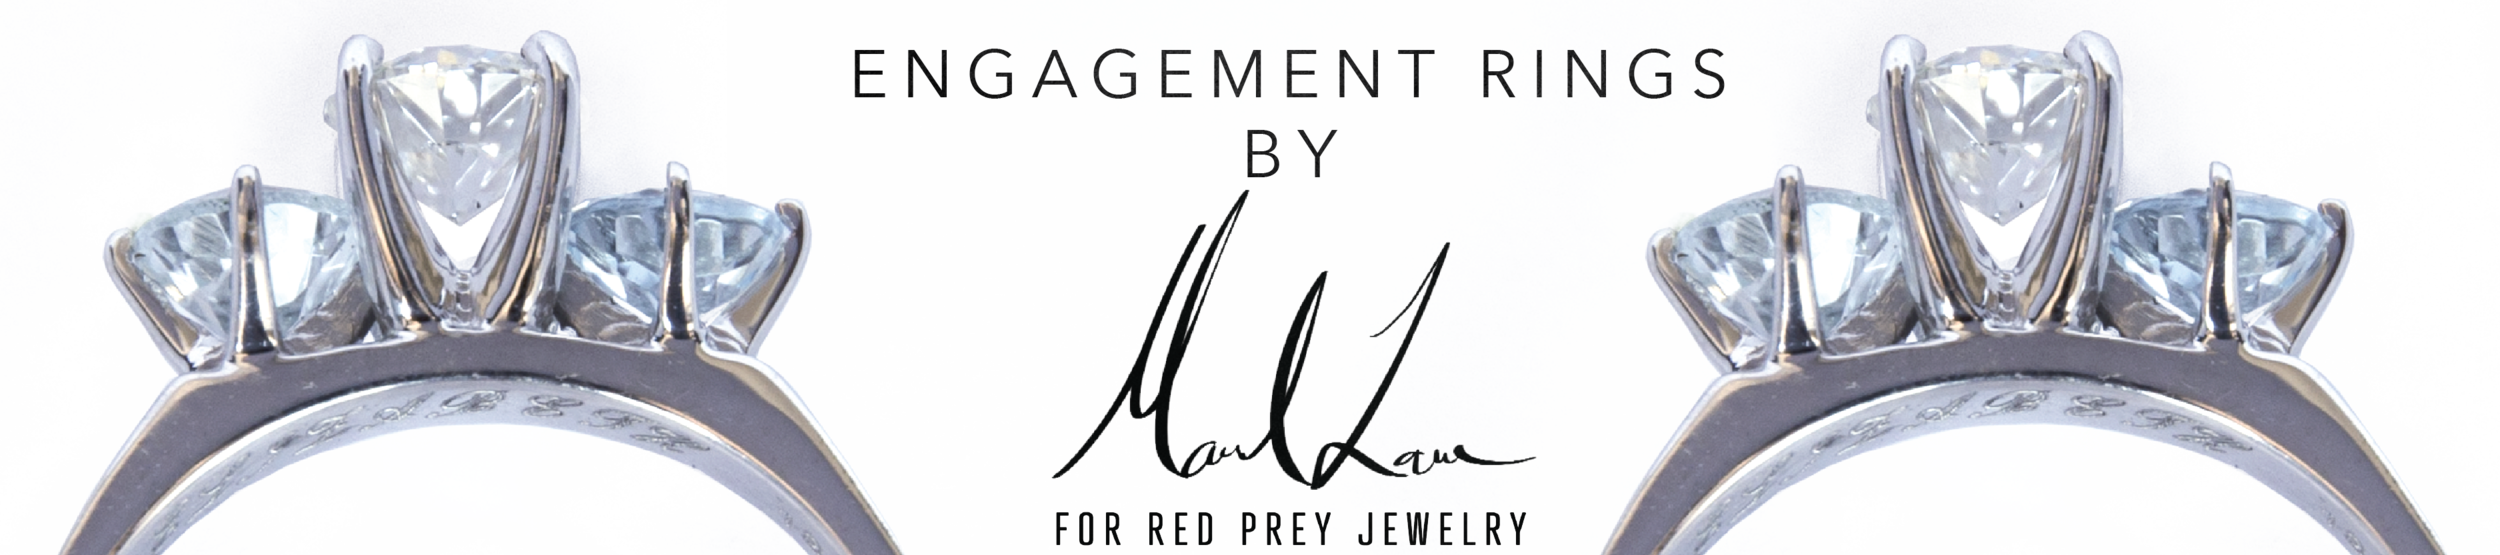 ENGAGEMENT_RINGS_BANNER-01.png